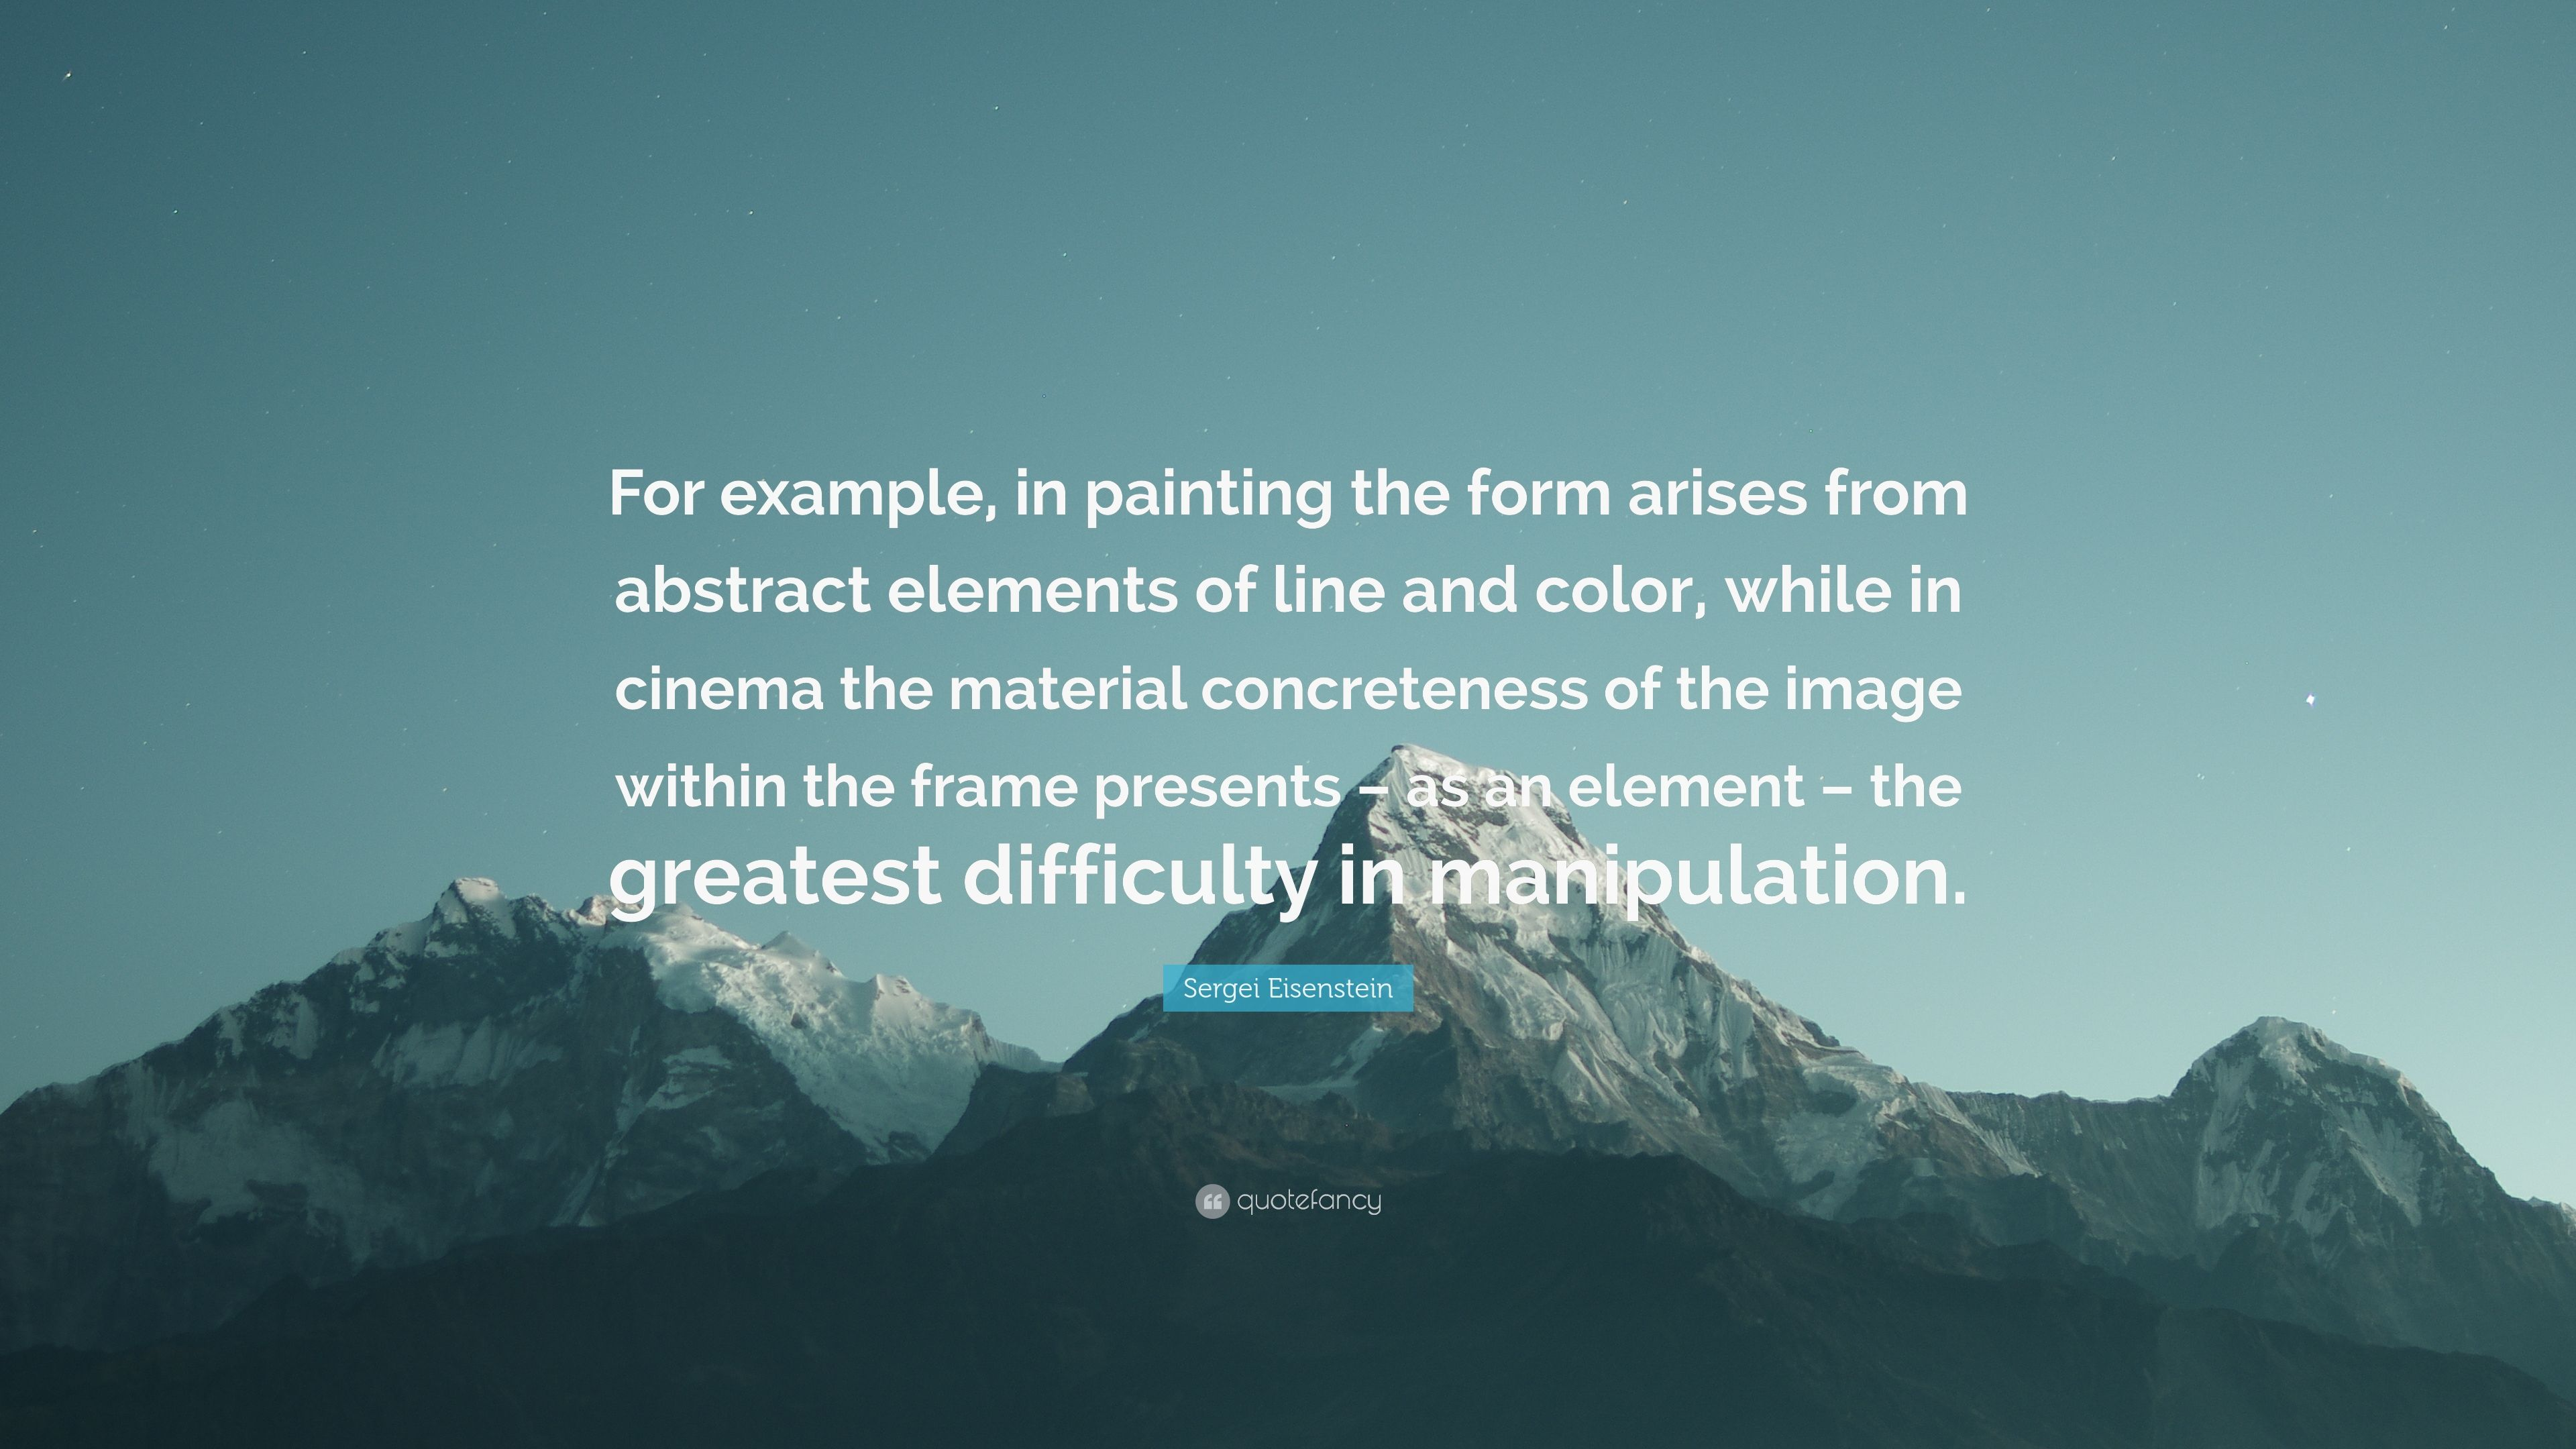 Line Color Form : Sergei eisenstein quote: u201cfor example in painting the form arises